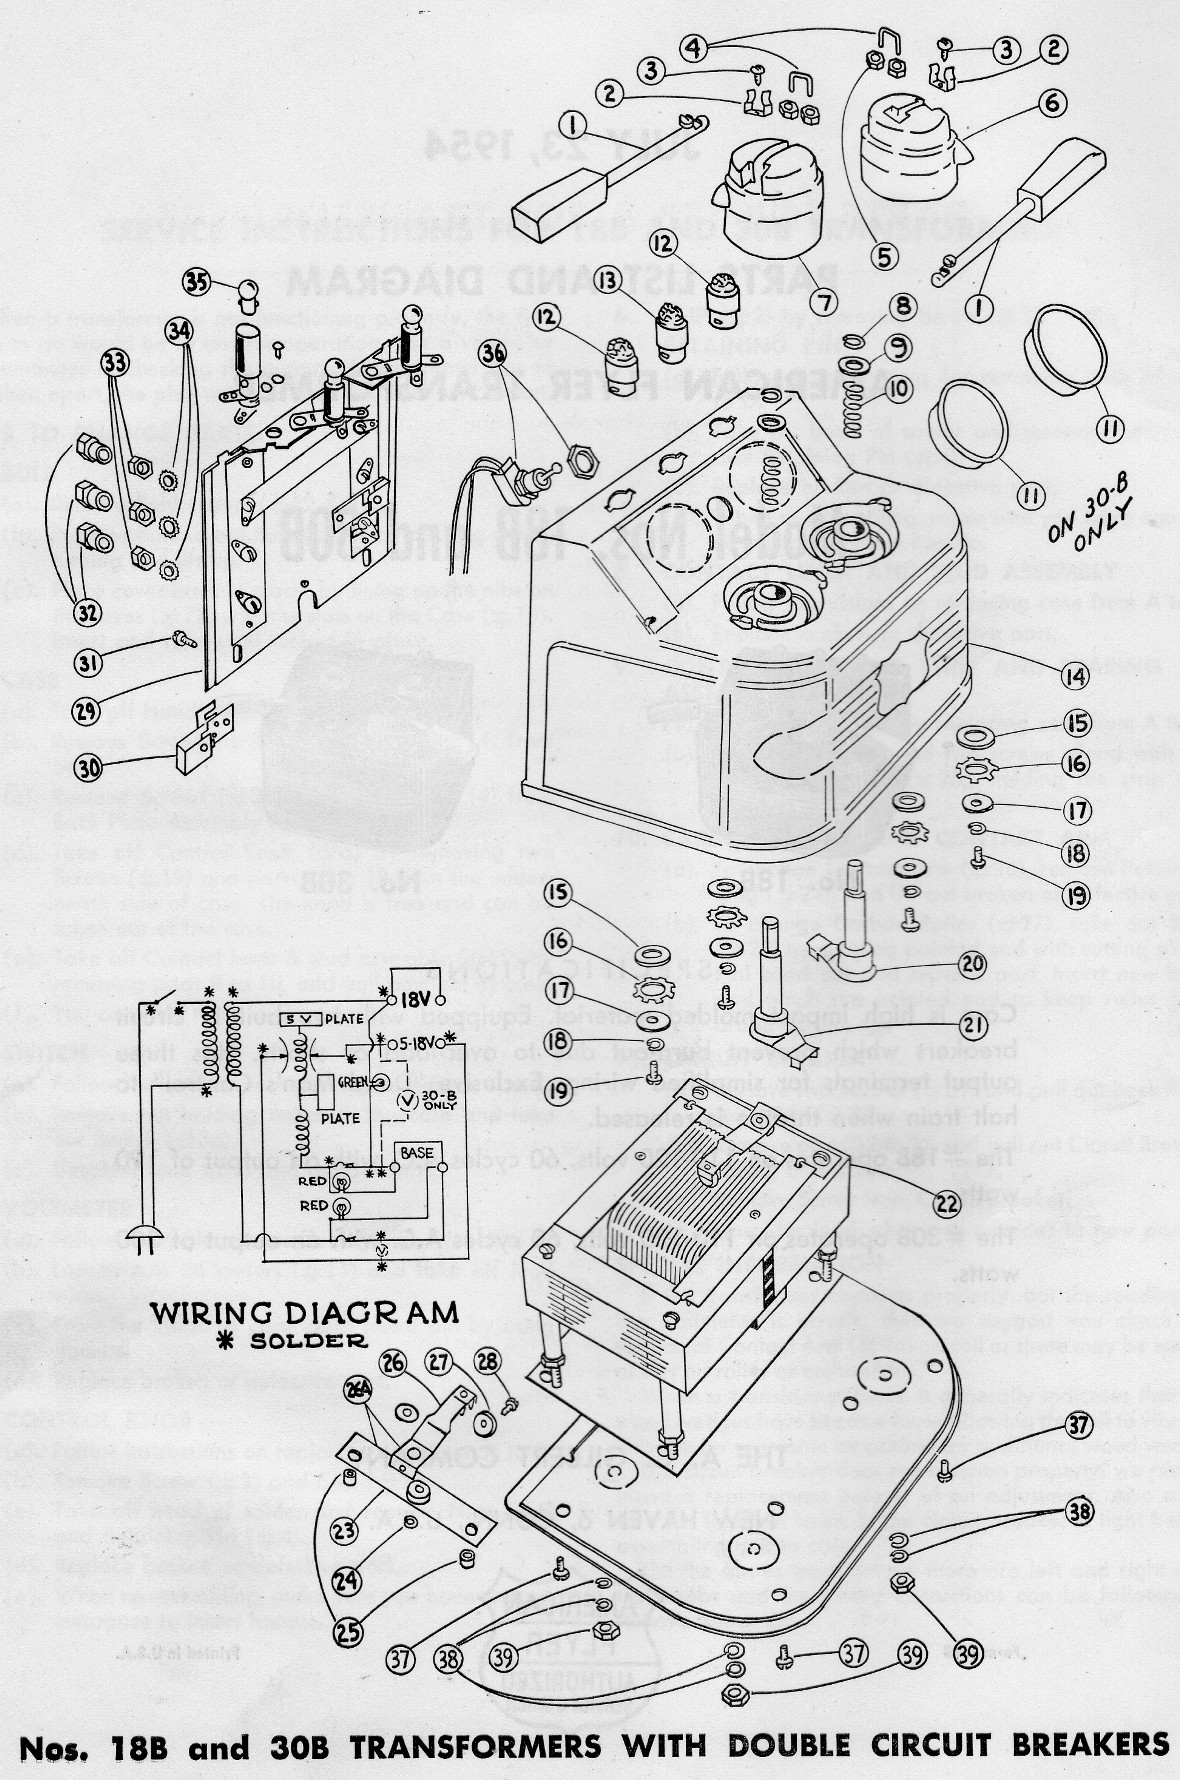 F1568 18B 30B Transformer Service Manual Lo Res 002 e1394708814718 american flyer transformer 18b & 30b parts list and diagram traindr american flyer wiring diagrams at nearapp.co